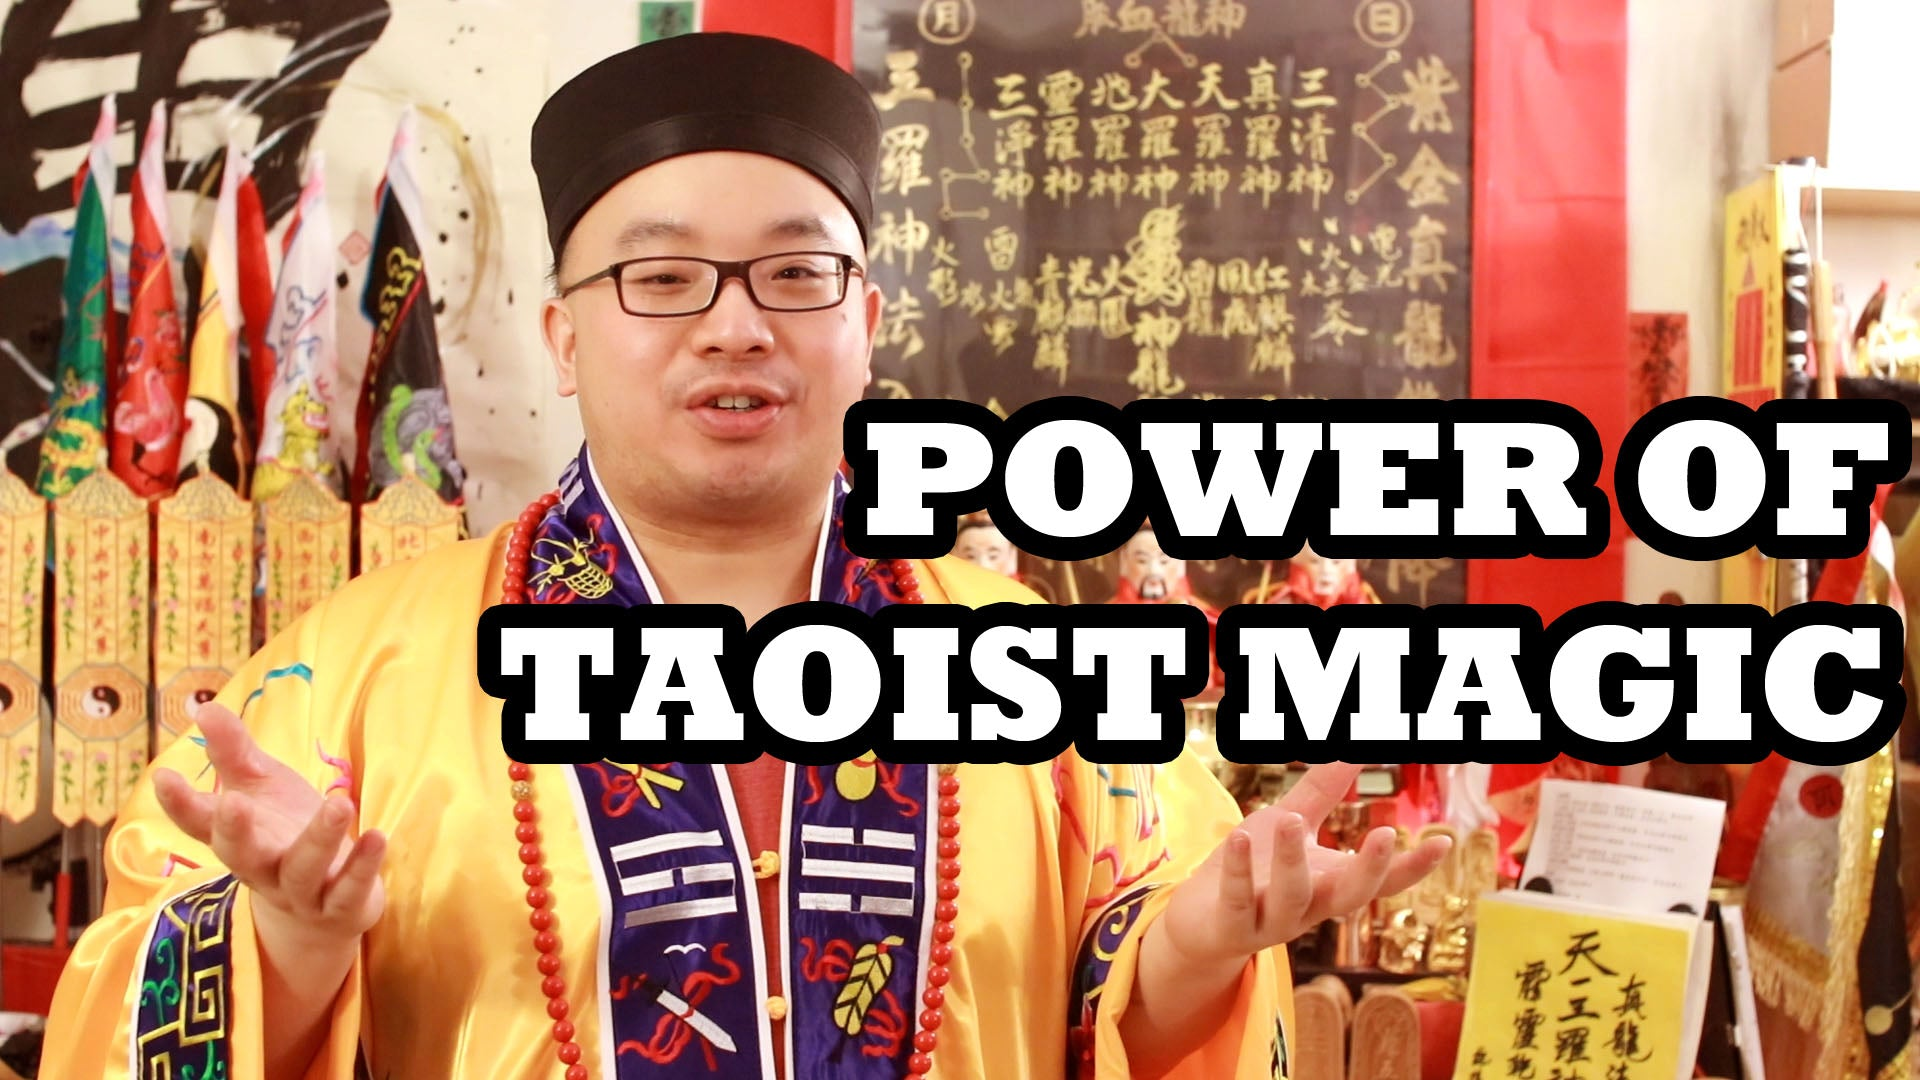 Proud to Be a Taoist! Always Prepared!